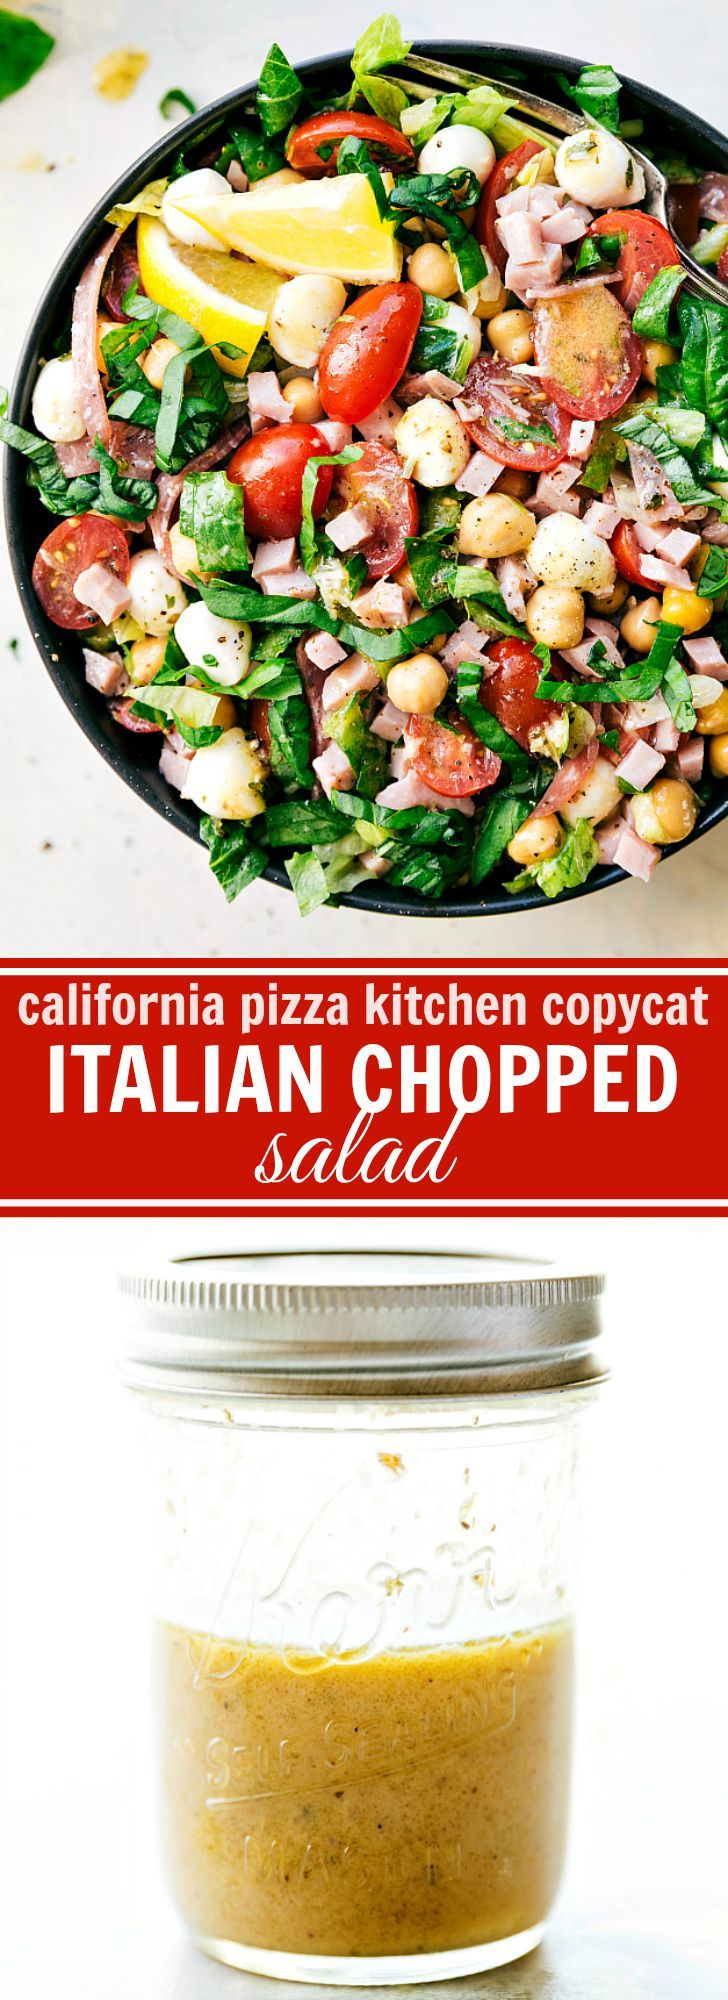 ITALIAN CHOPPED SALAD -- California Pizza Kitchen Copycat with the best lemon dijon herb dressing. So many great flavors and simple to make!